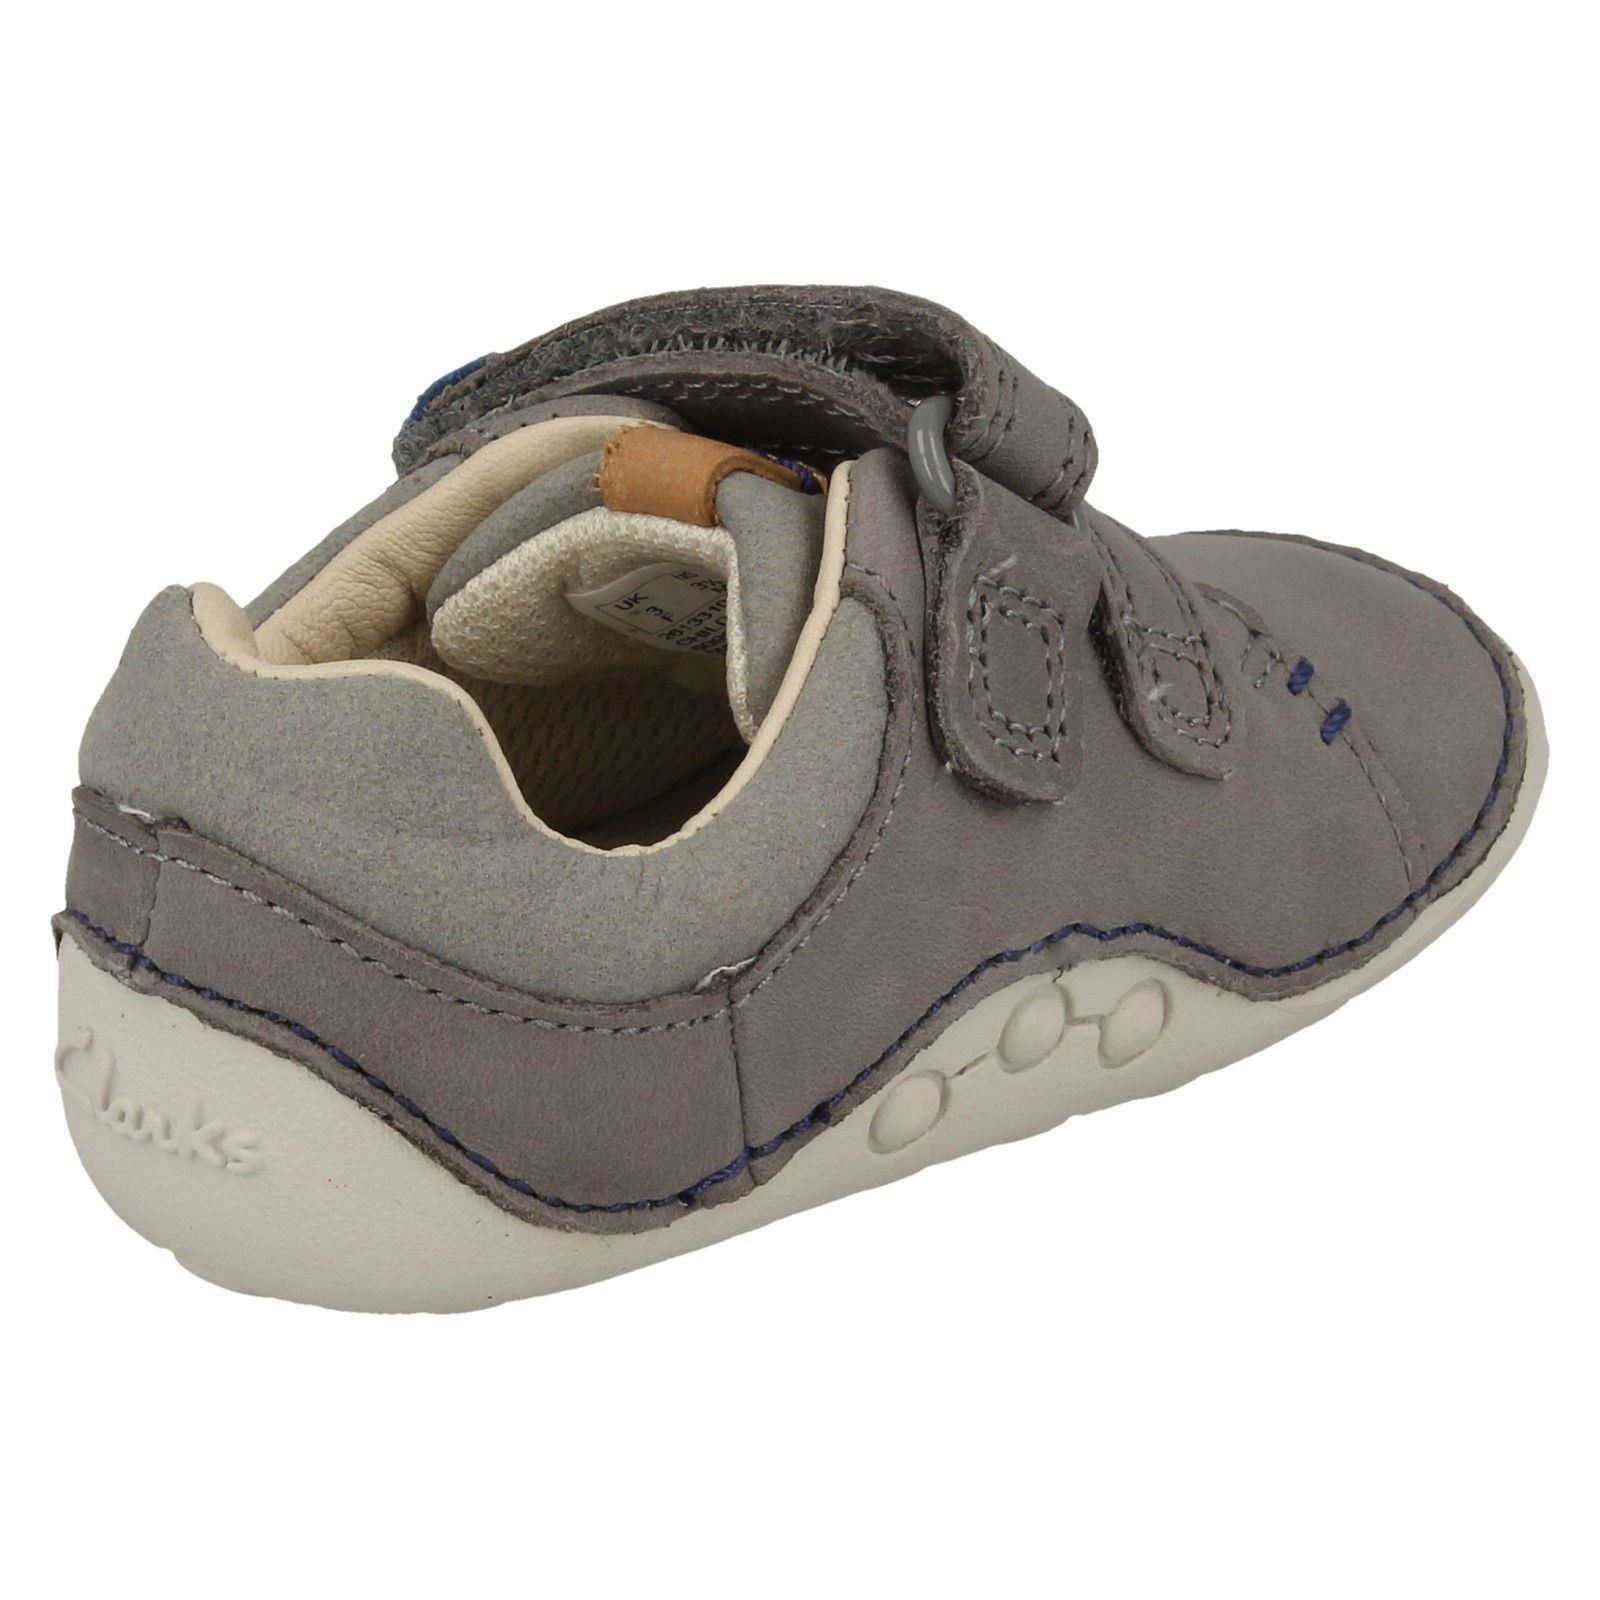 Boys Clarks Hook and Loop Fastening First Shoes Tiny Toby